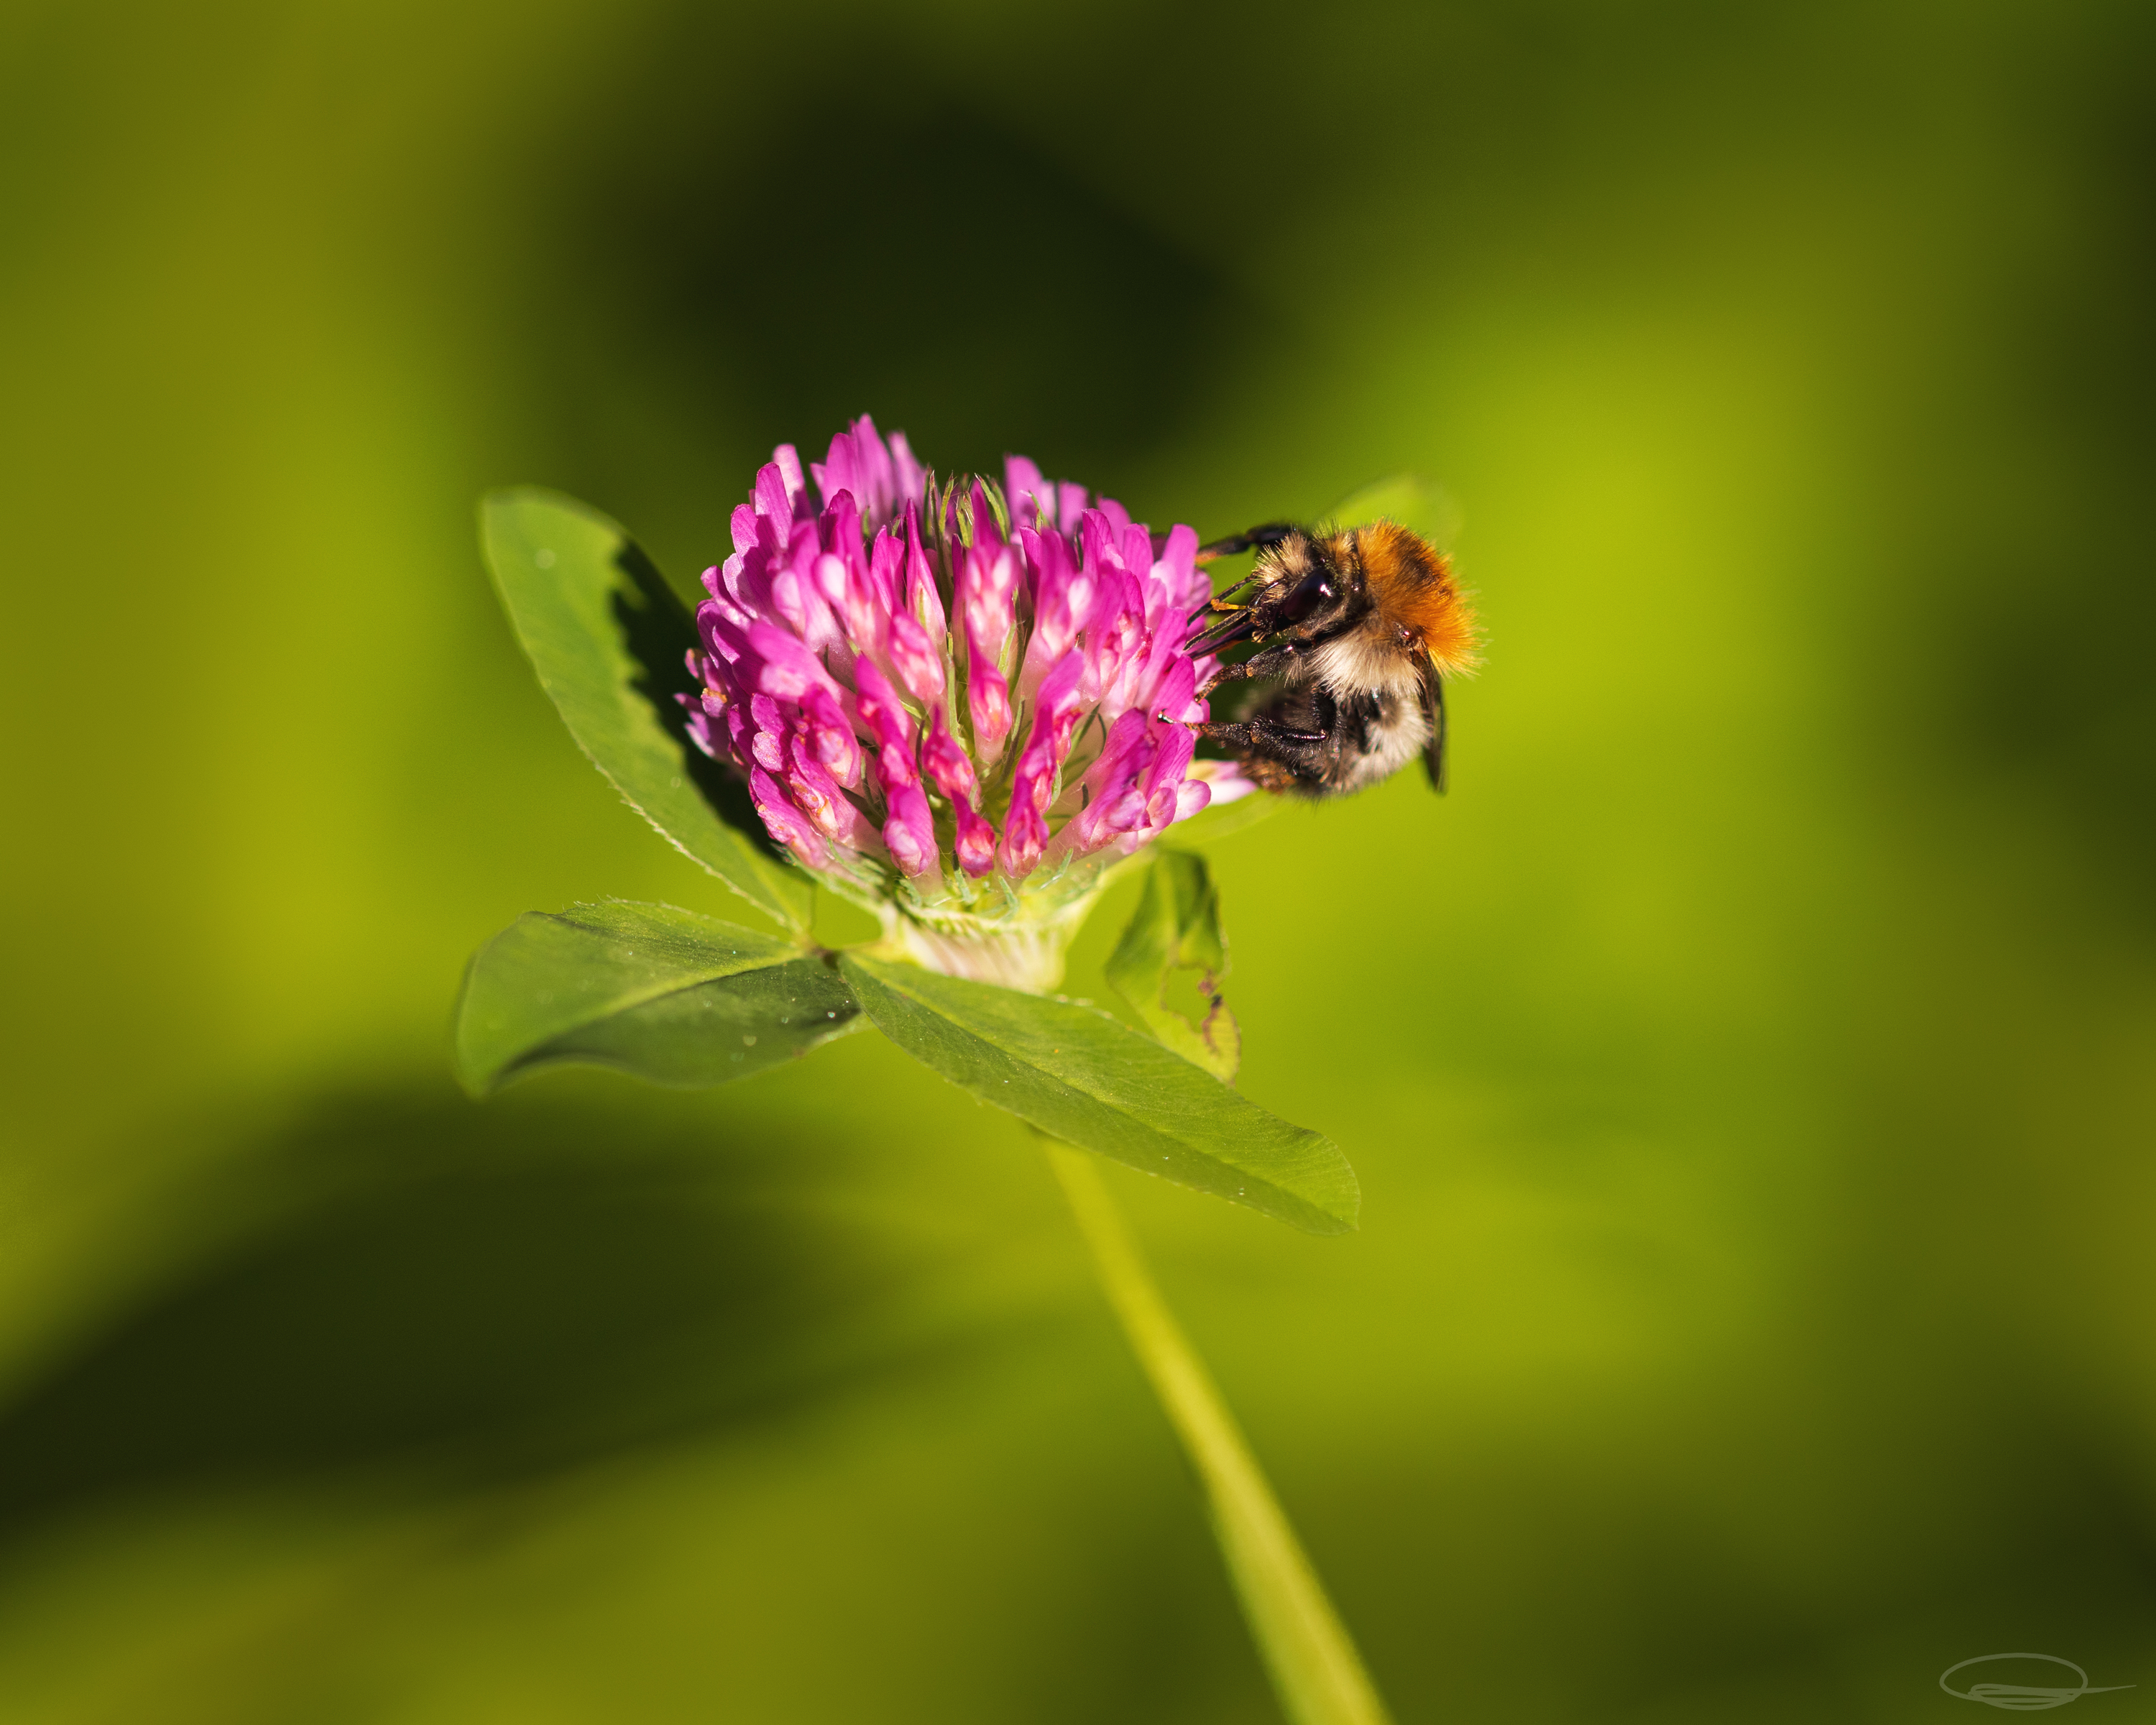 Bumblebee - Bombus Pascuorum - on Clover Blossom